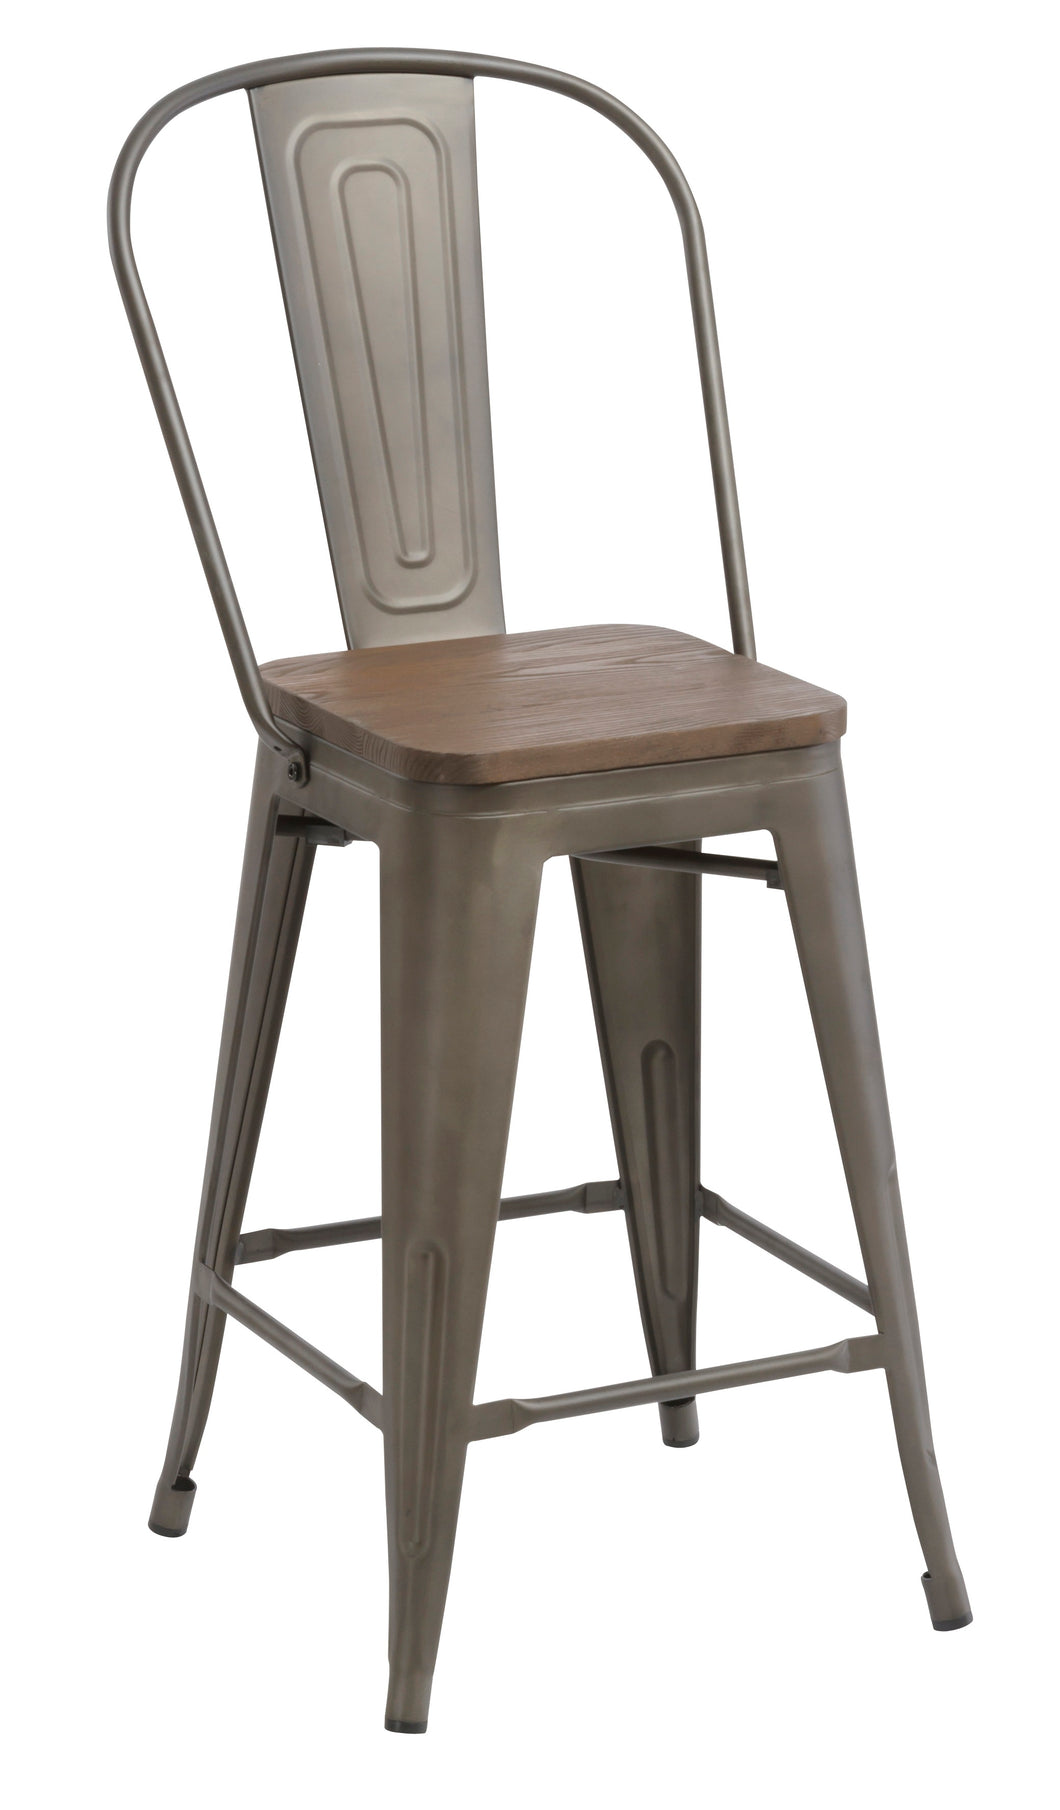 24 metal antique rustic counter height bar stool chair high back